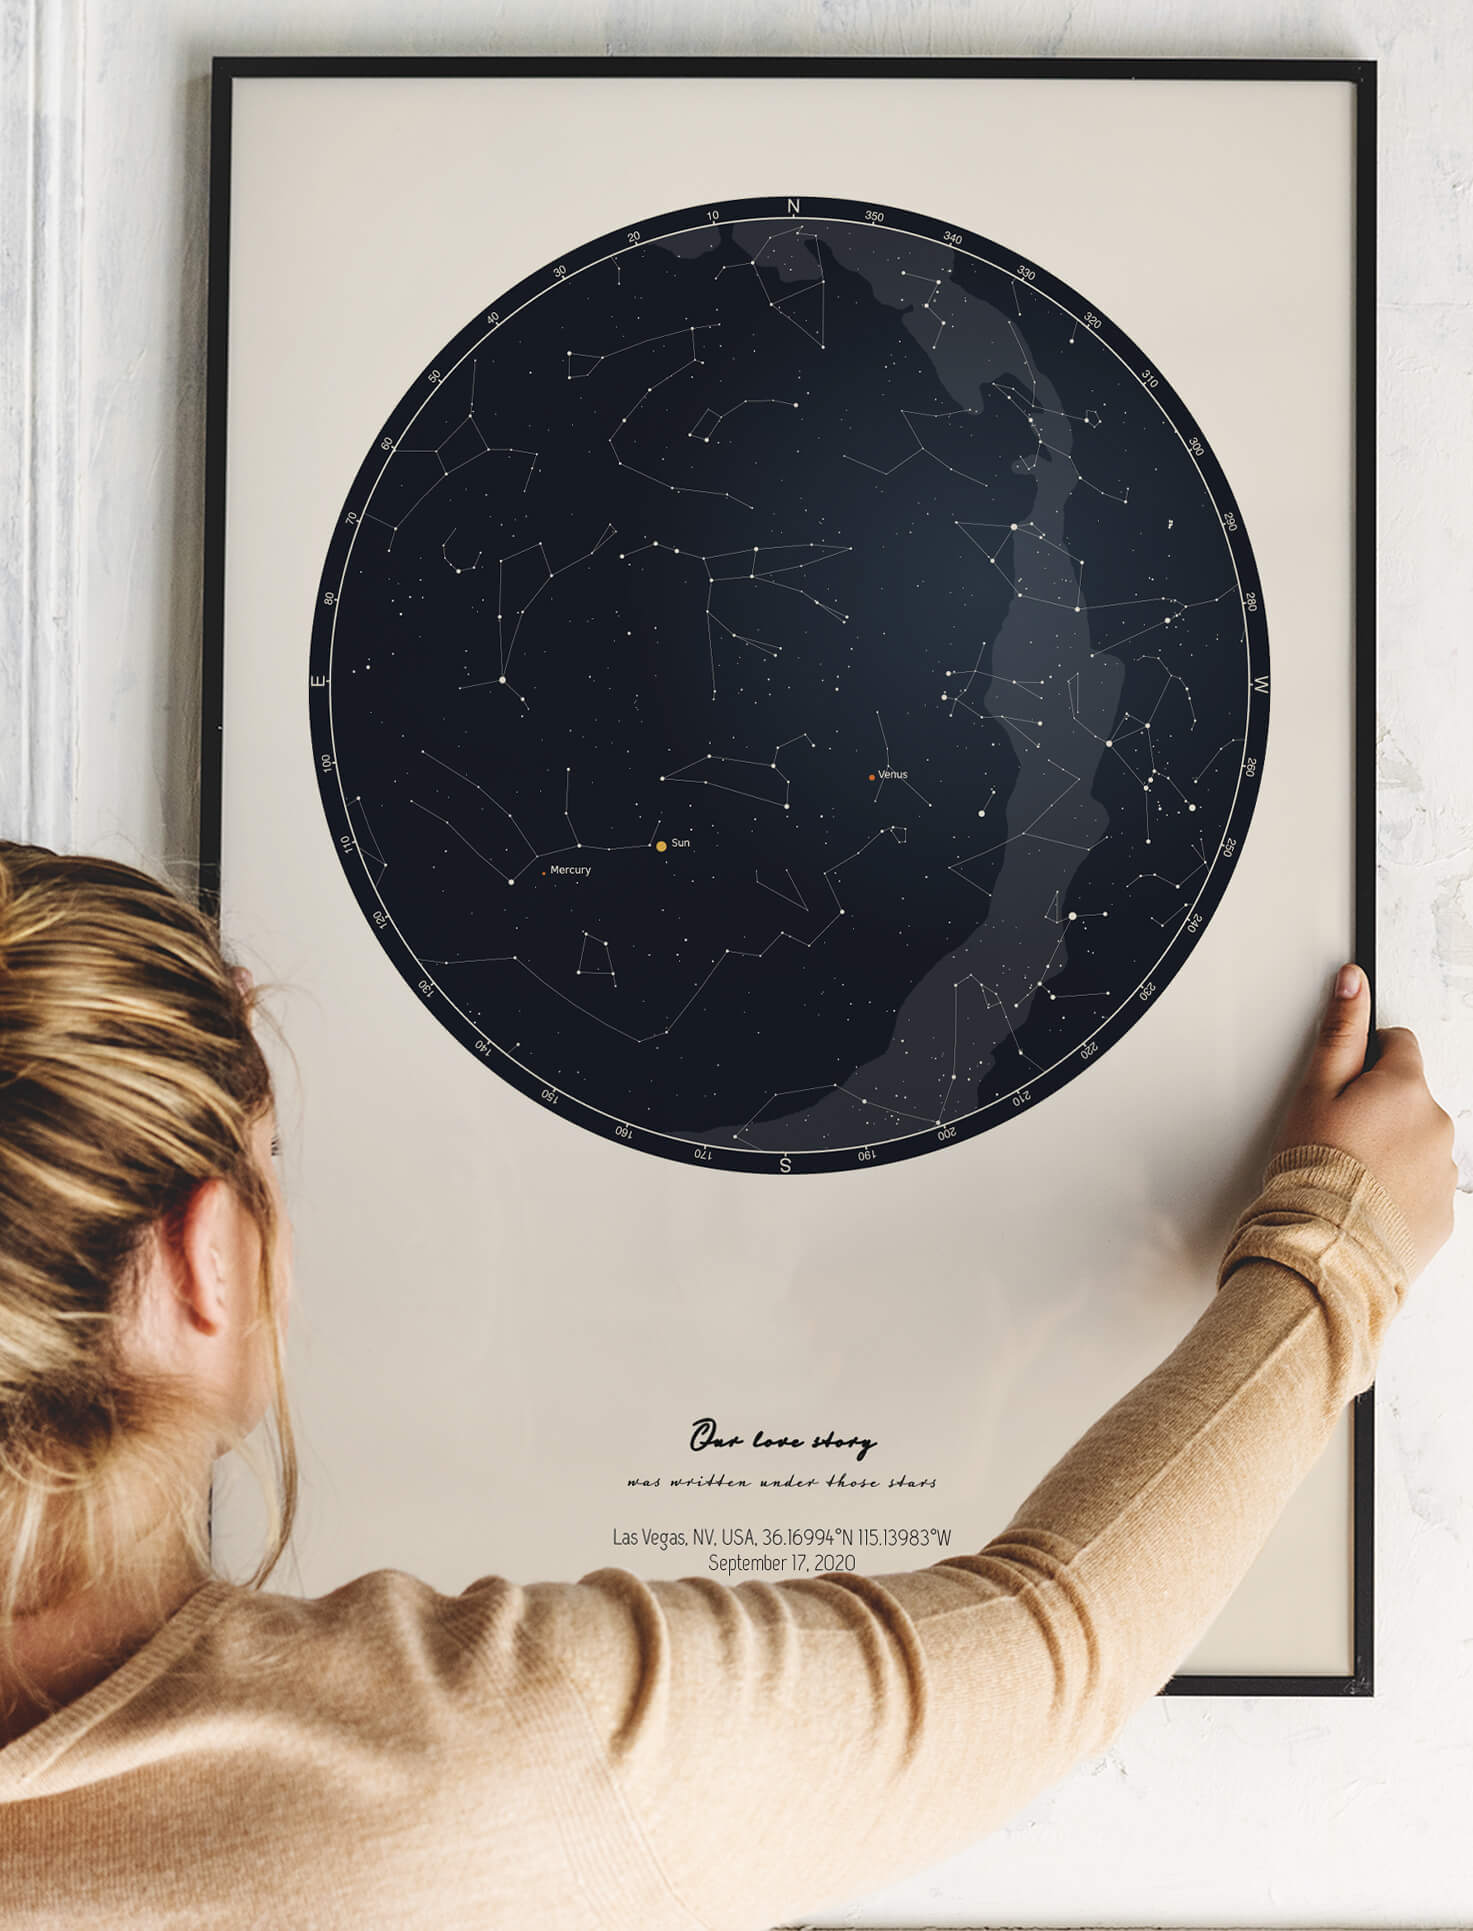 Personalized star map in black frame